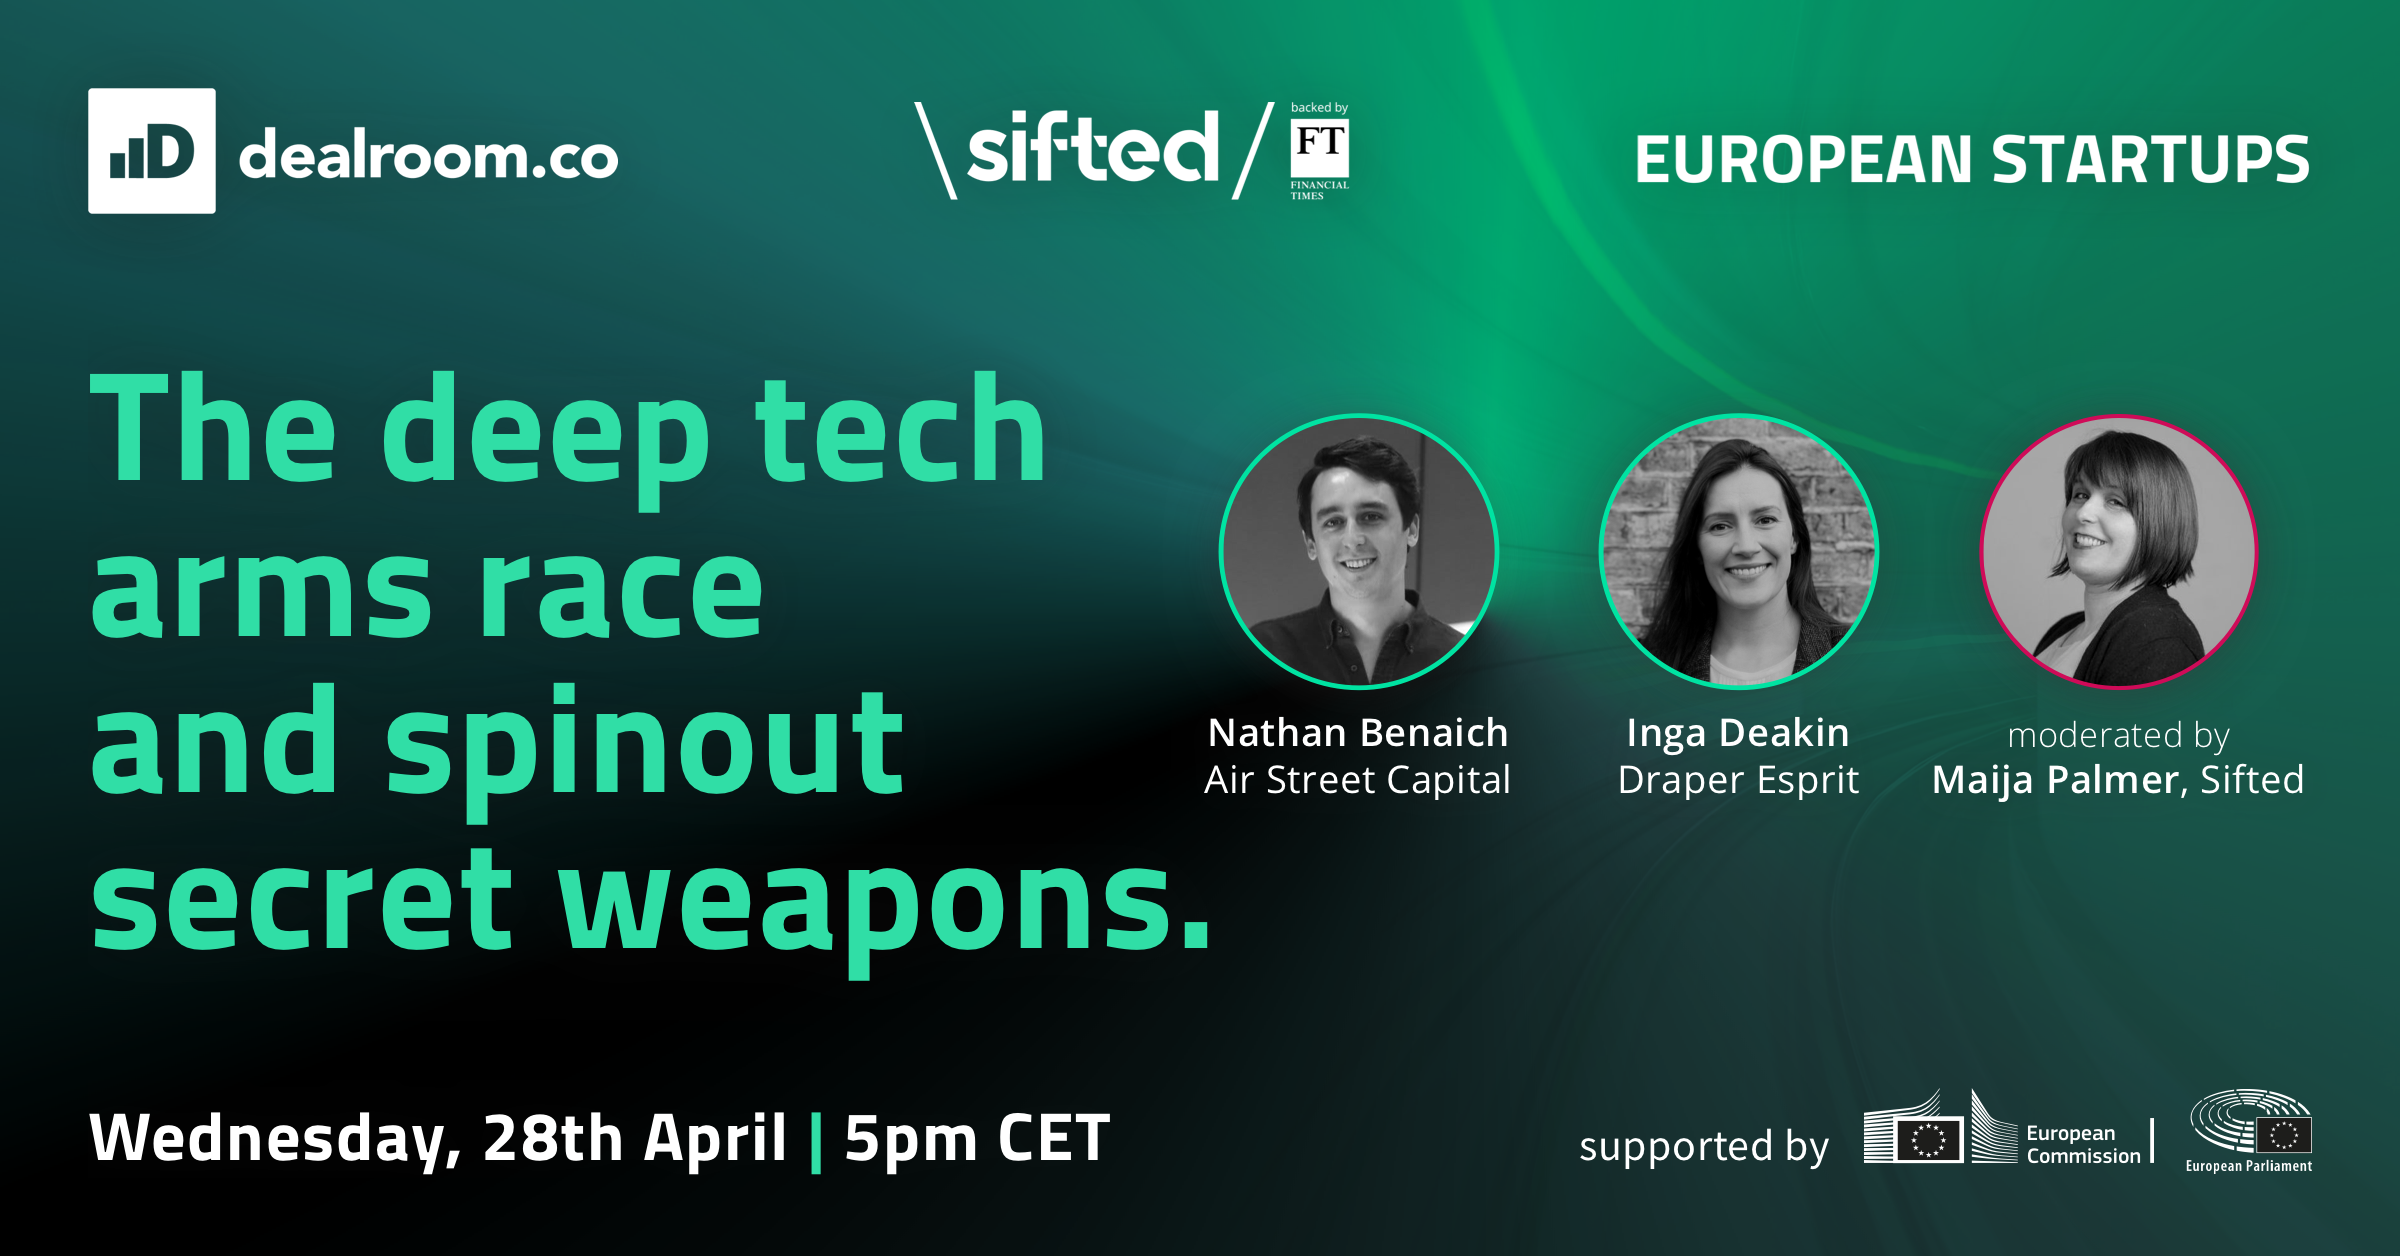 Dealroom & Sifted deep tech and university spintouts evert event